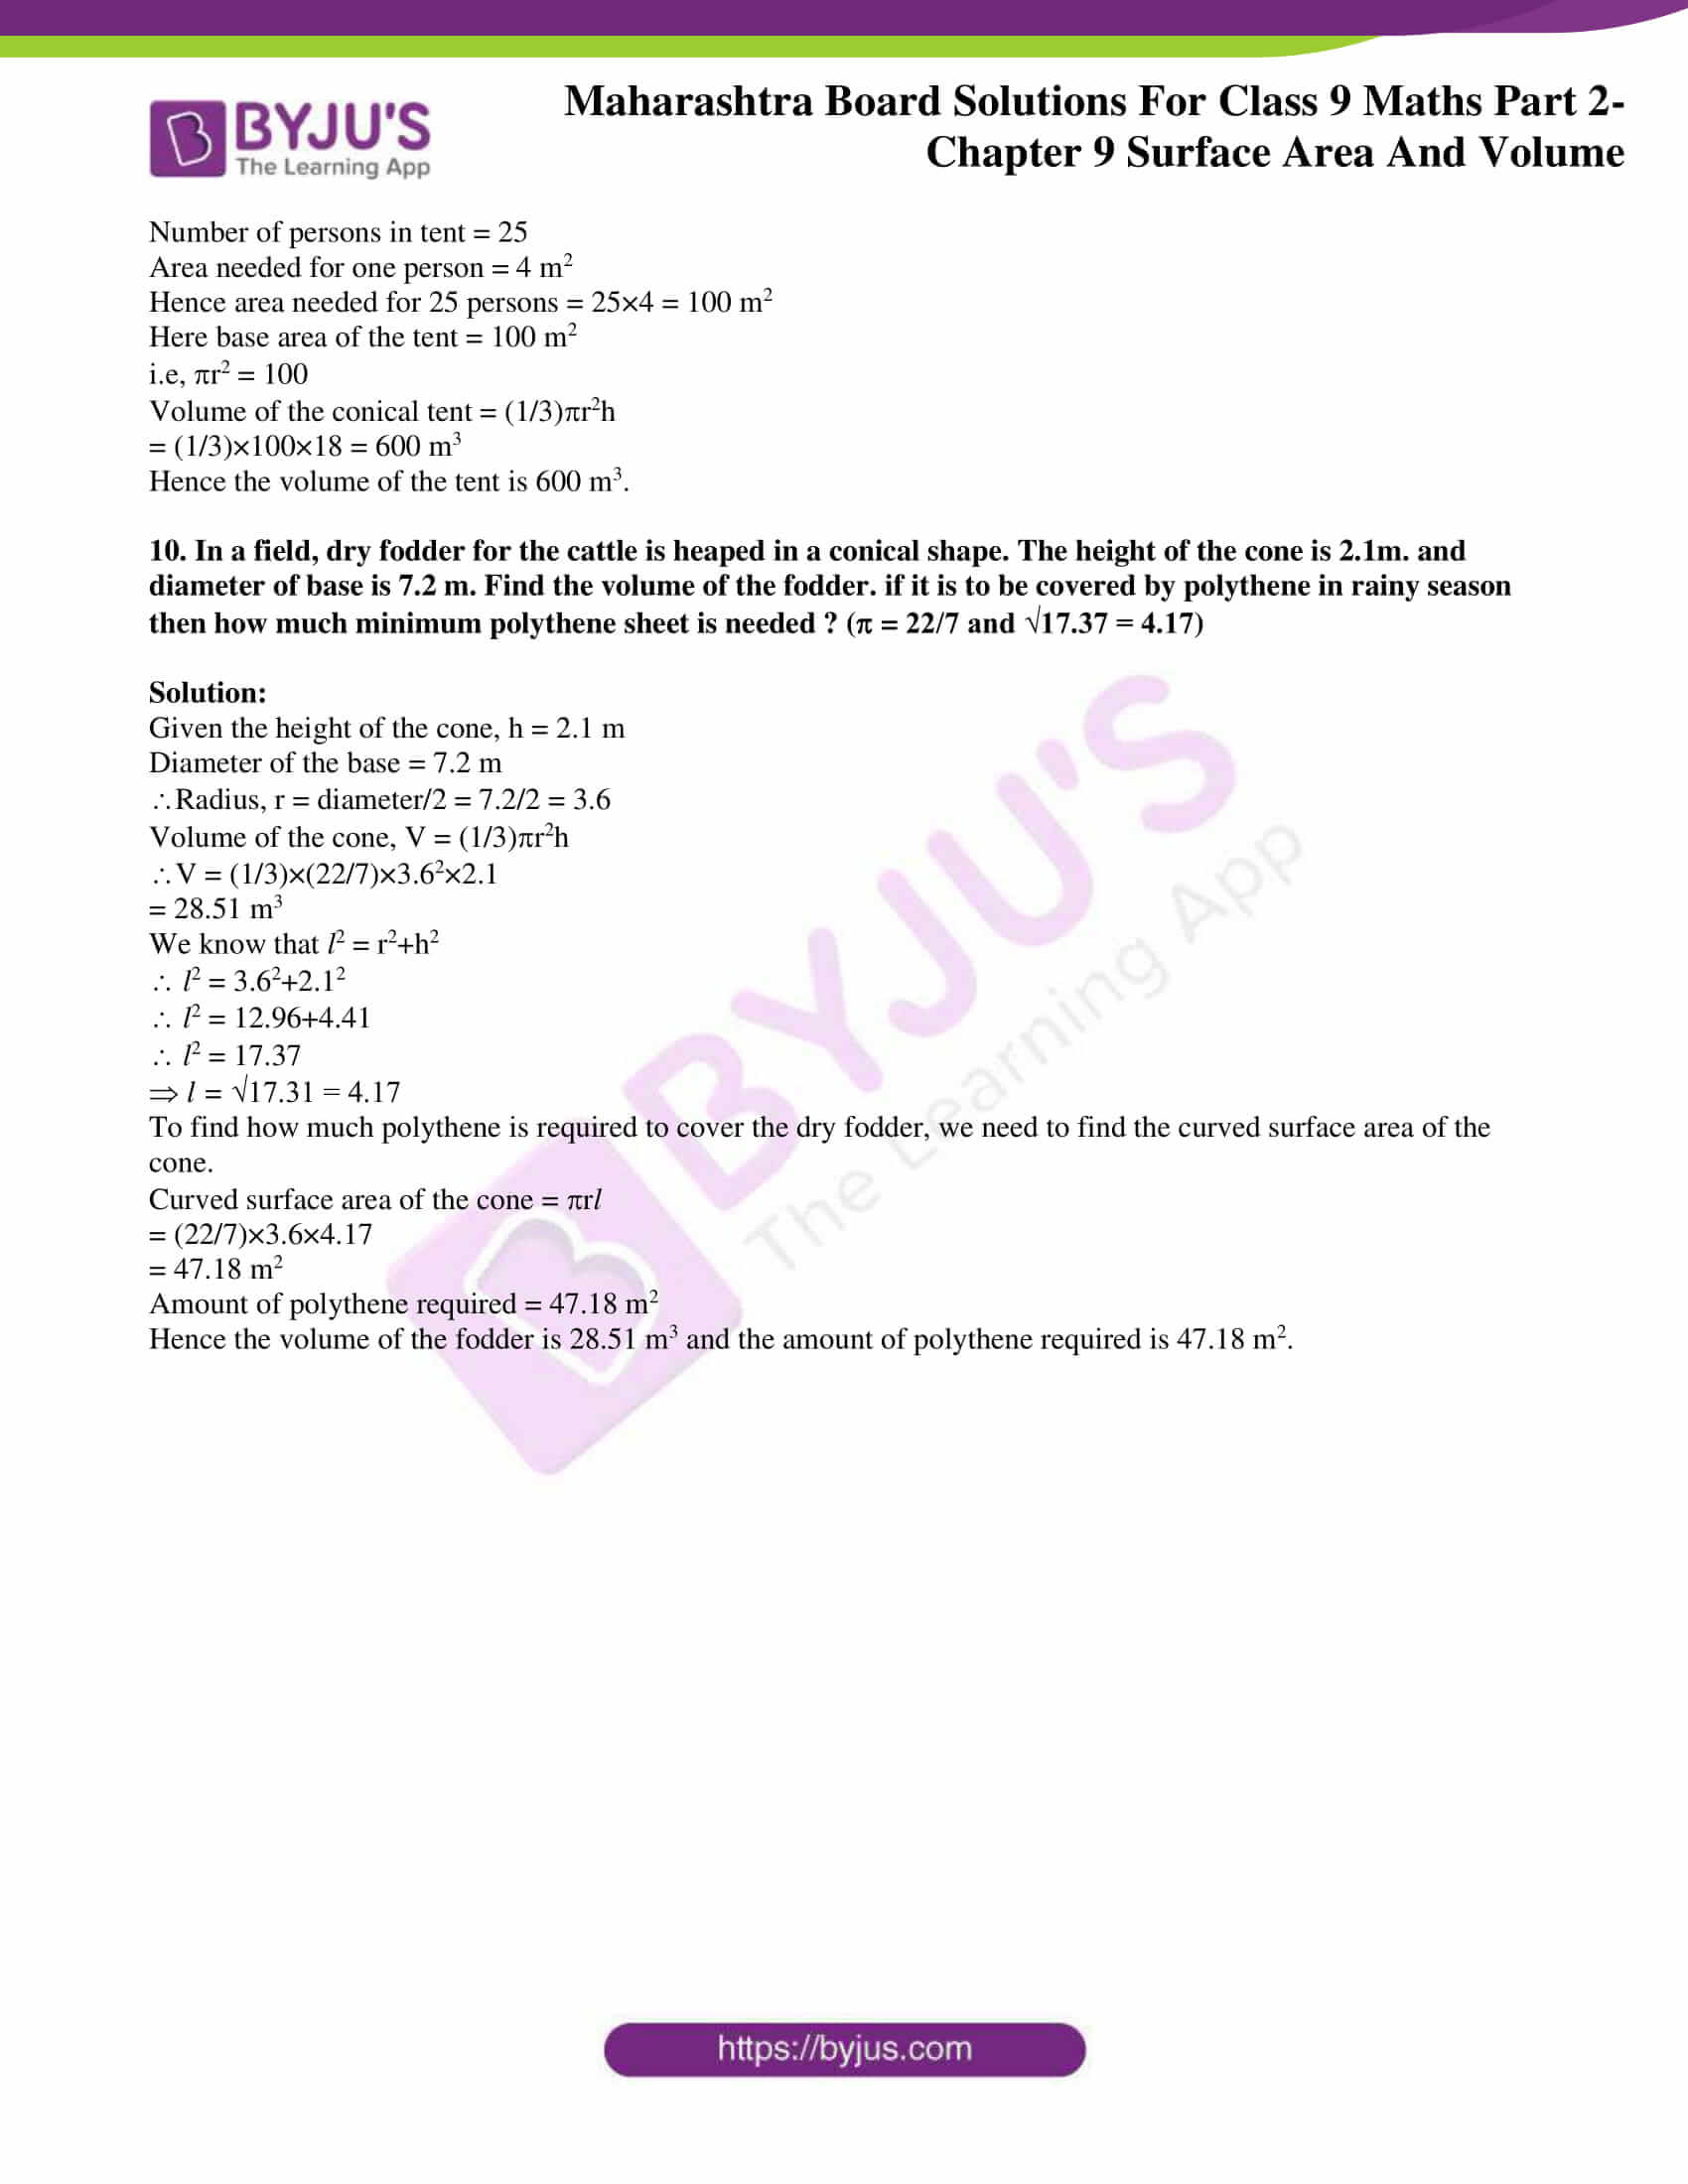 msbshse solutions for class 9 maths part 2 chapter 9 07